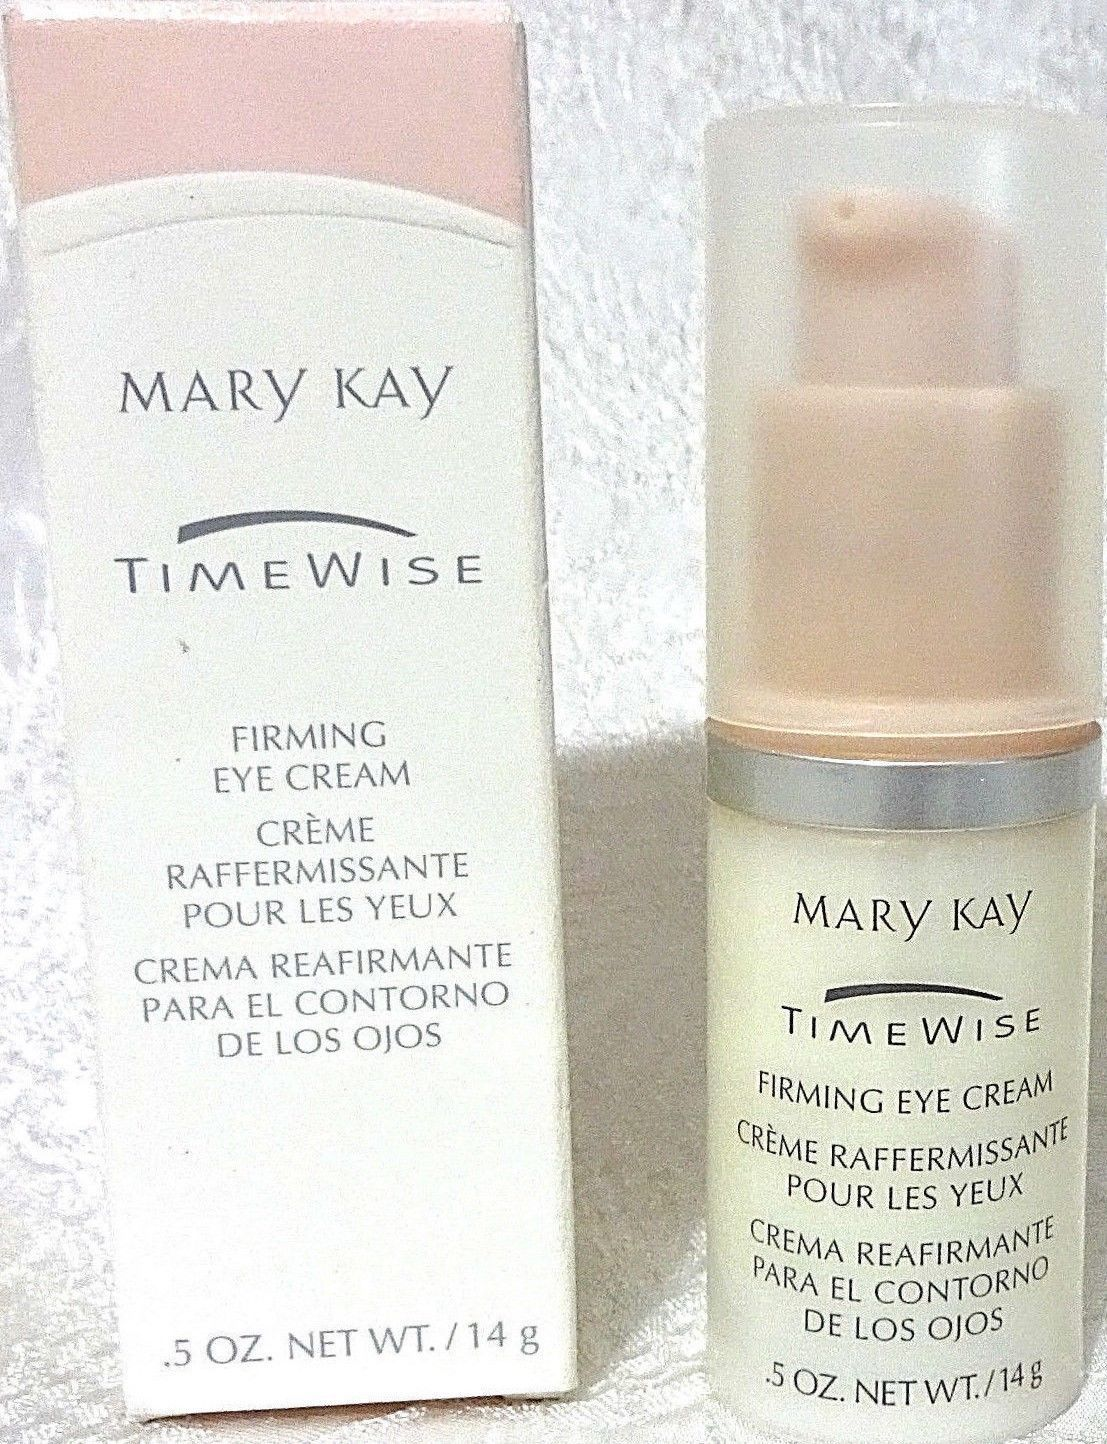 Mary Kay Timewise Firming Eye Cream 5 Oz New In Box Cosrx Honey Ceramide 30ml Treatments And Masks 177764 Buy It Now Only 1499 On Ebay